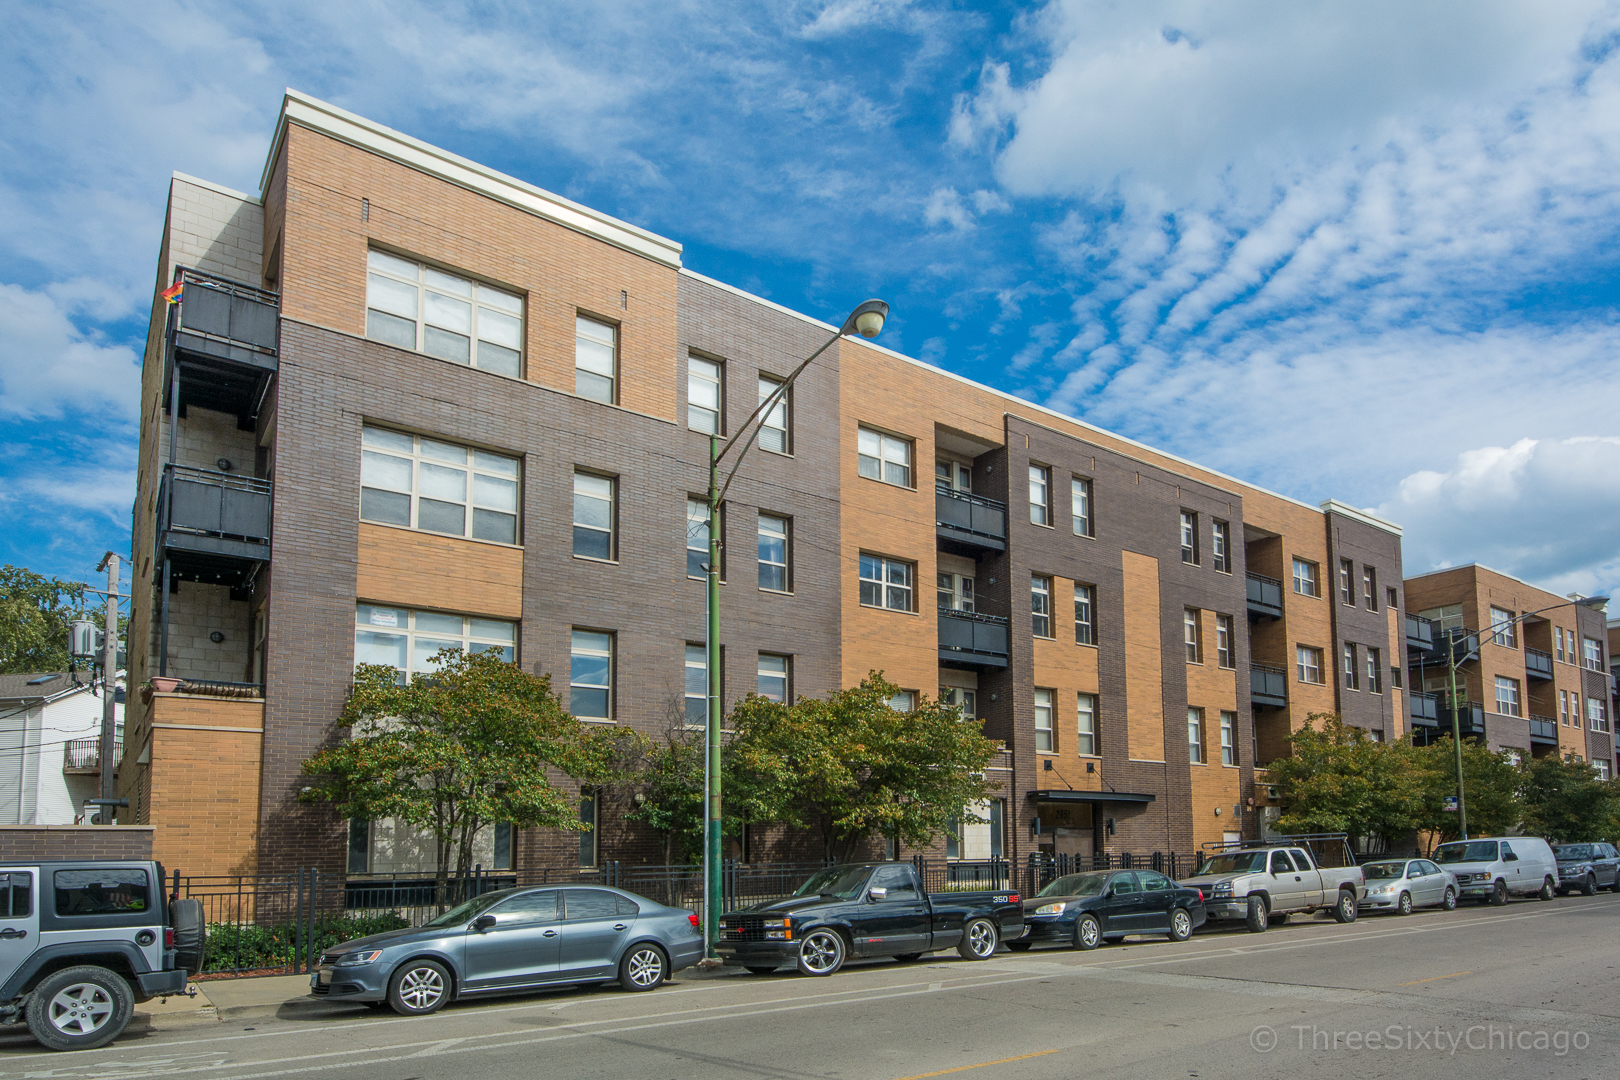 2951 Clybourn Unit Unit 201 ,Chicago, Illinois 60618